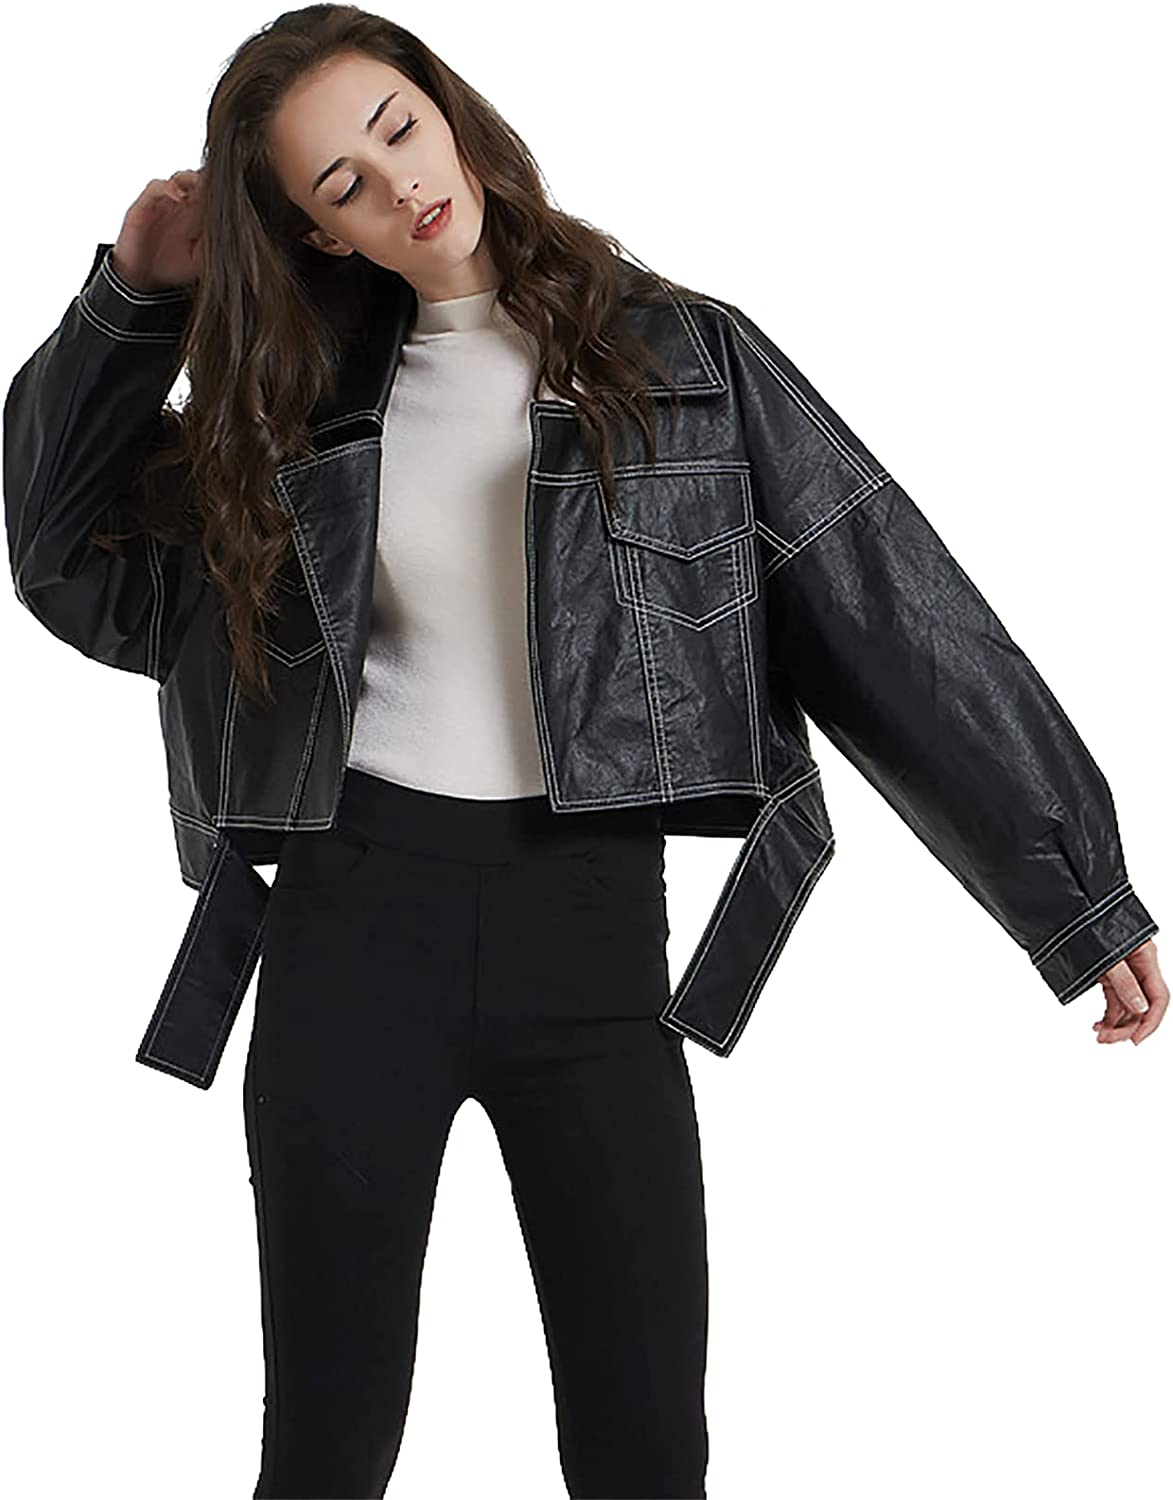 BHROSE Women's Leather Lapel BF Loose Edition Street Fashion Bright line Motorcycle Jacket